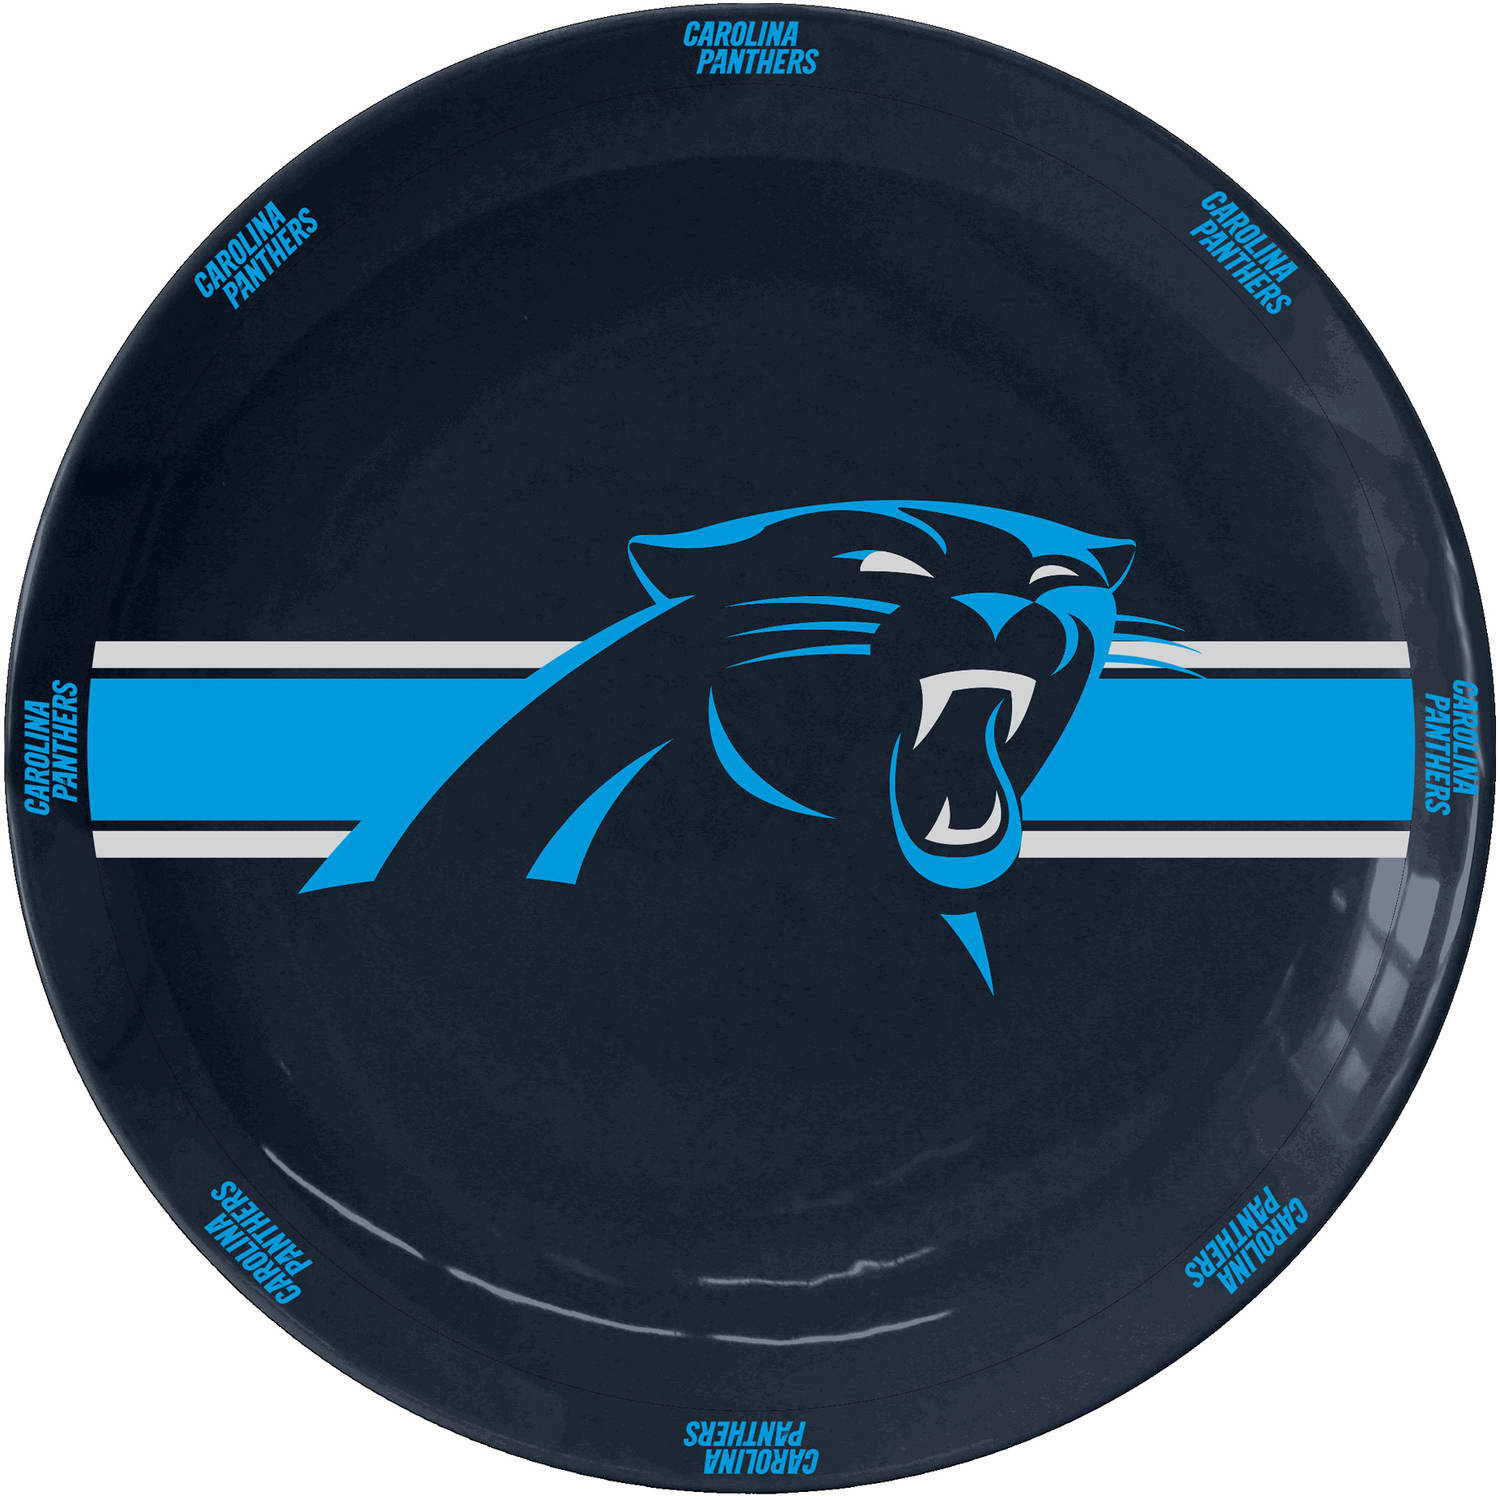 NFL Carolina Panthers Ceramic Serving Plate